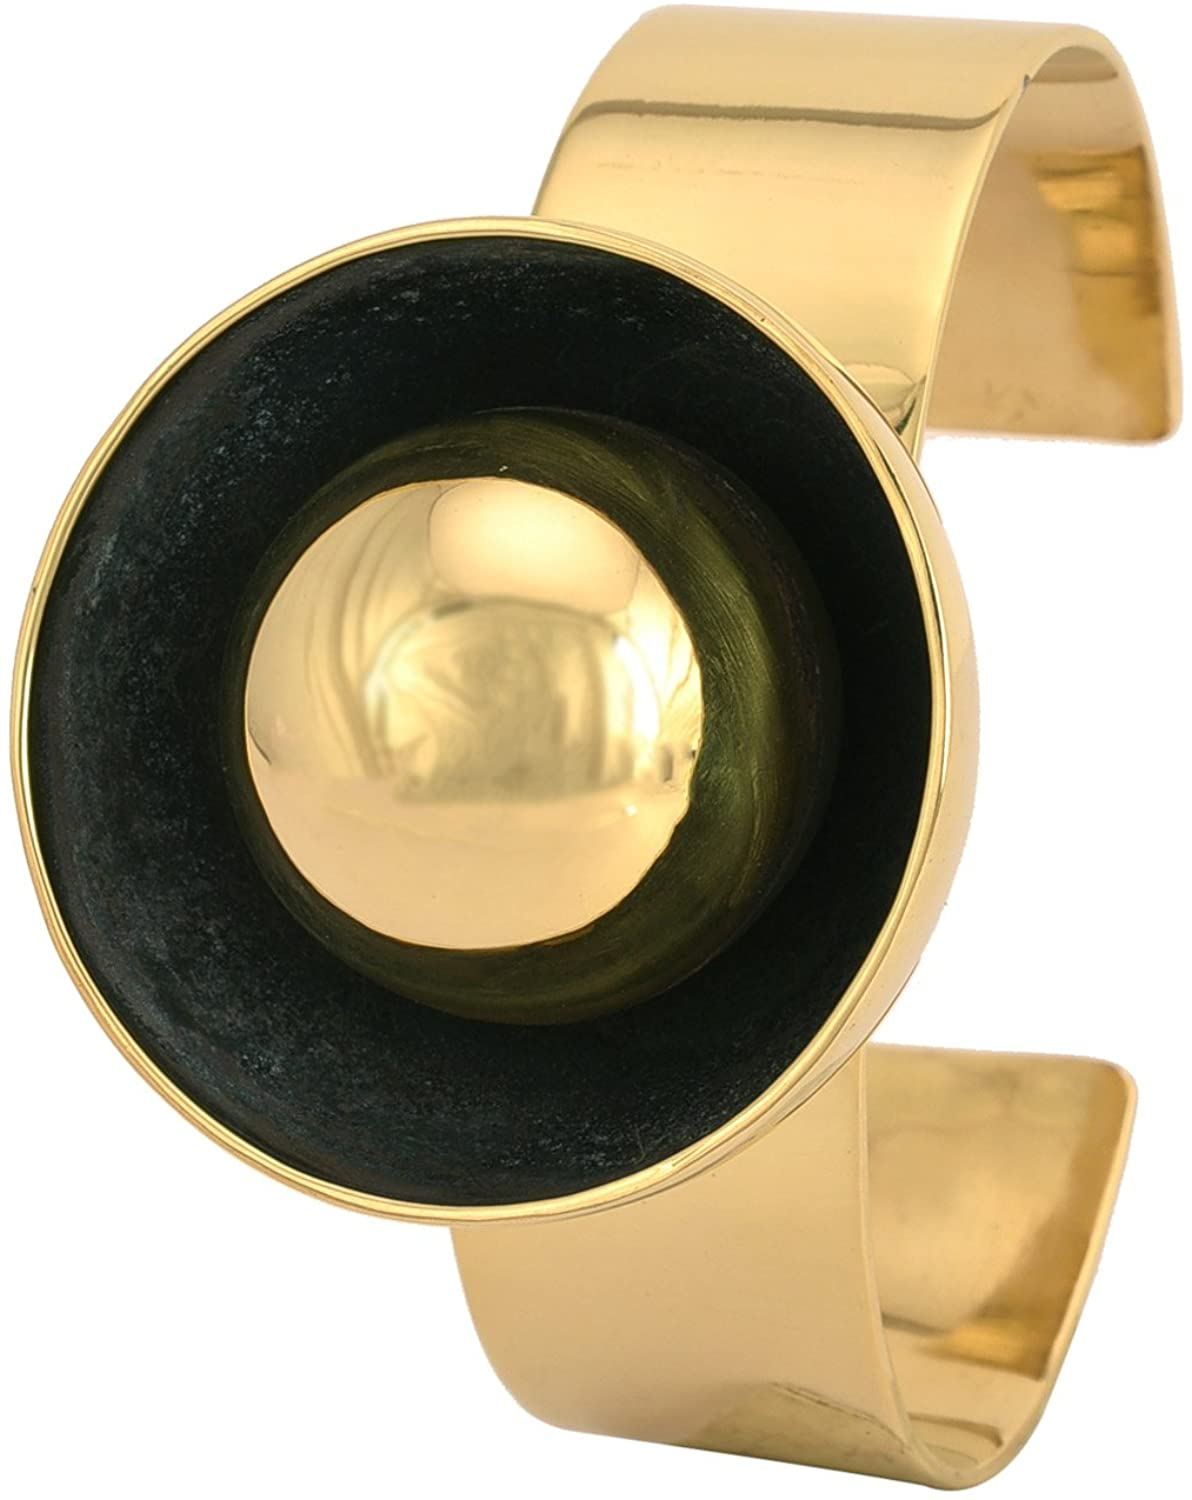 Handmade Brass Cuff with cup and Ball Design